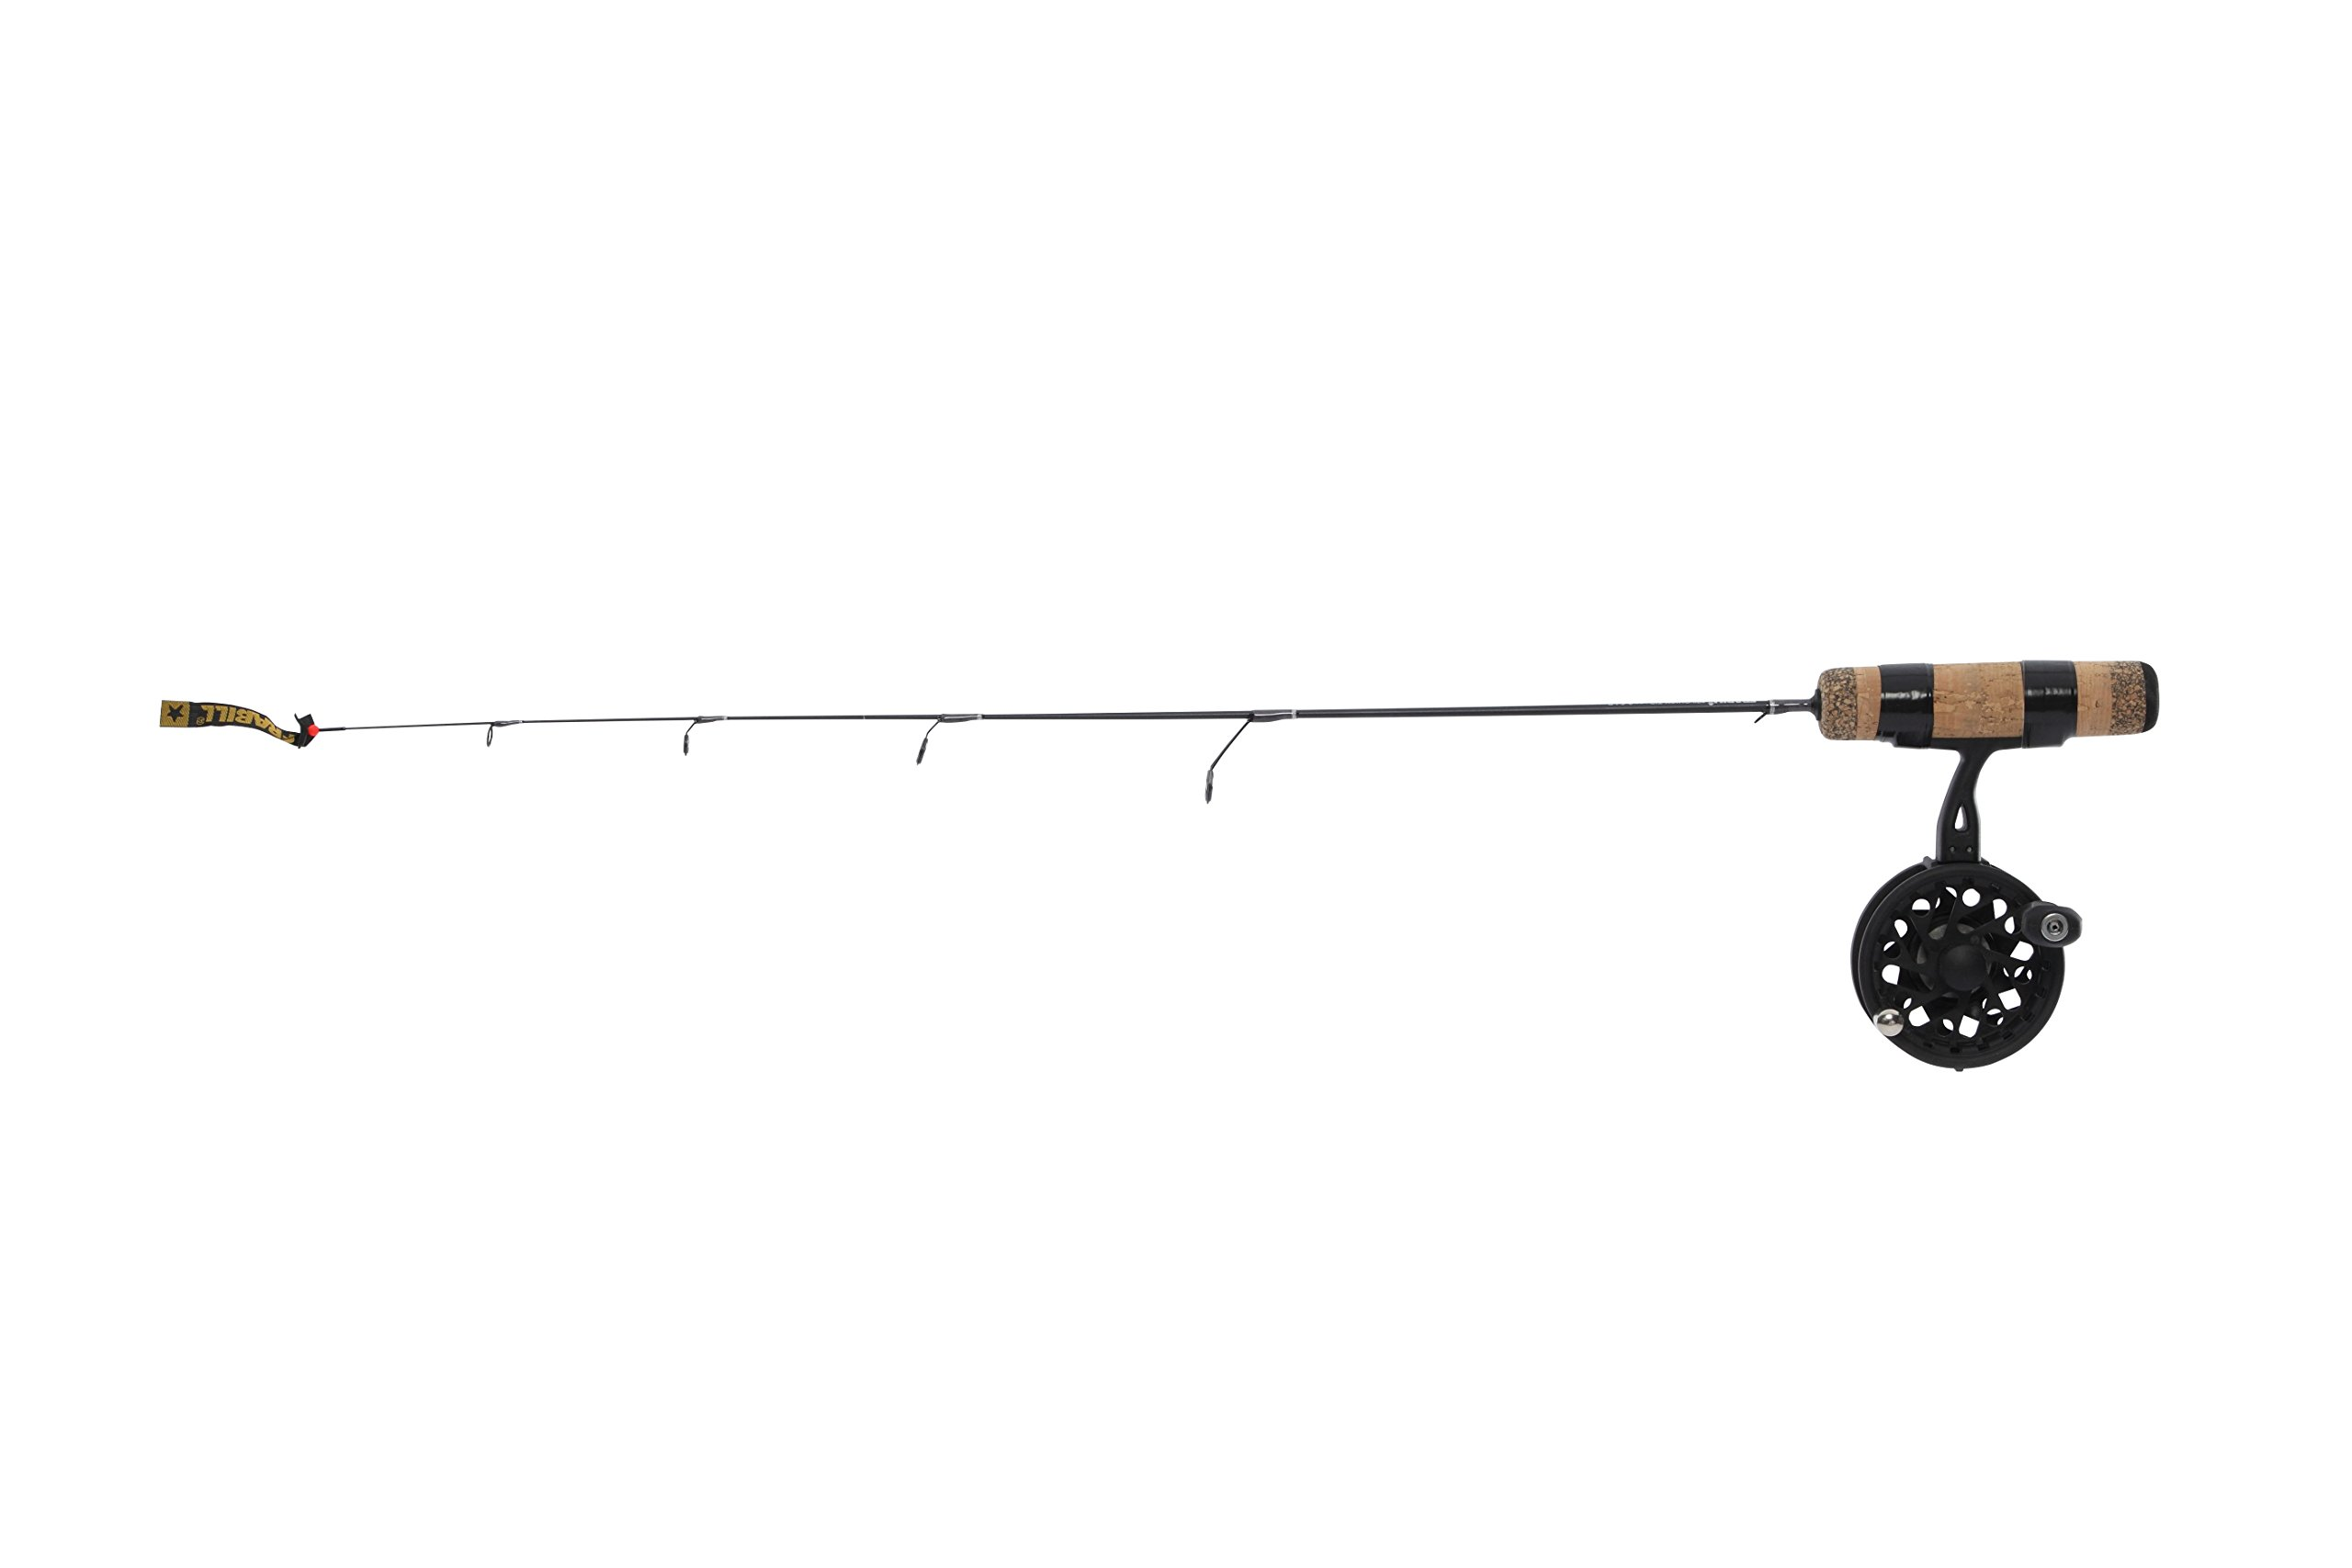 Frabill Straight Line 101XLA 32-Inch Quick Tip Ice Fishing Combo, Black by Frabill